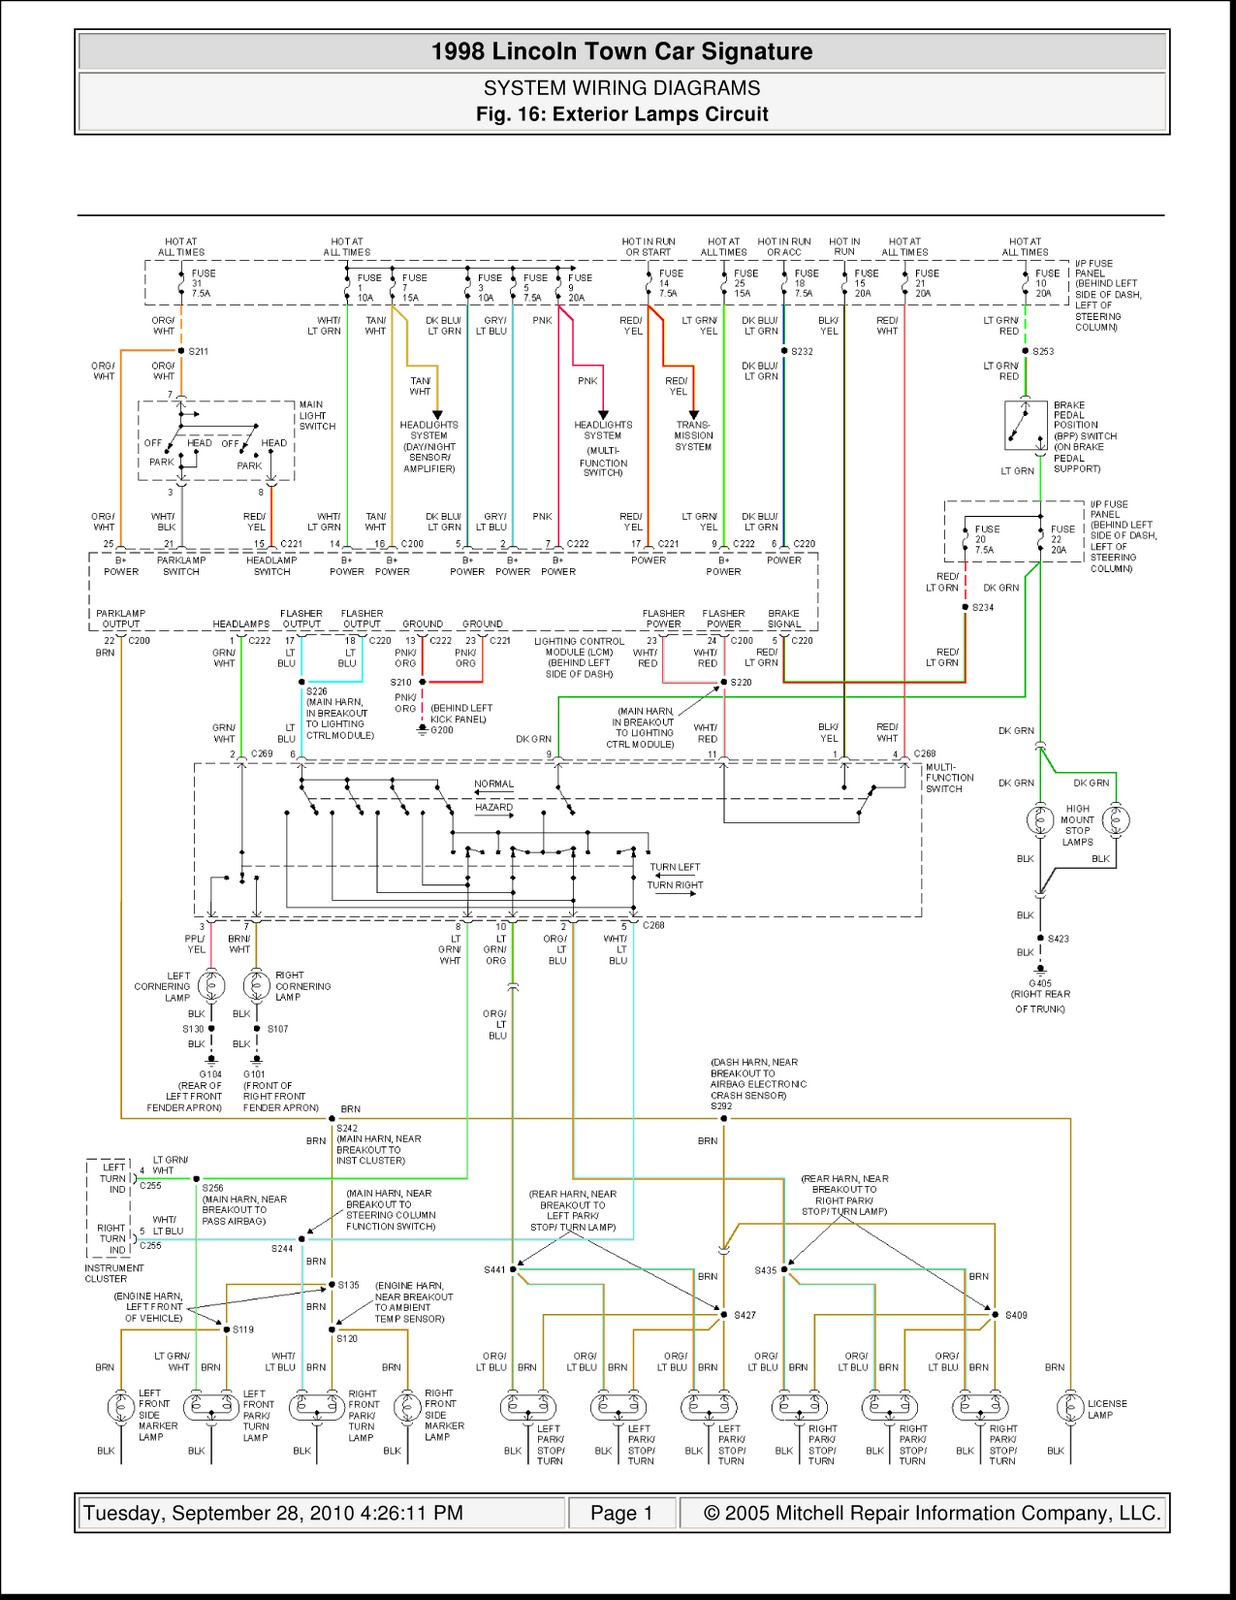 1995 Lincoln Town Car Wiring Diagram from 4.bp.blogspot.com